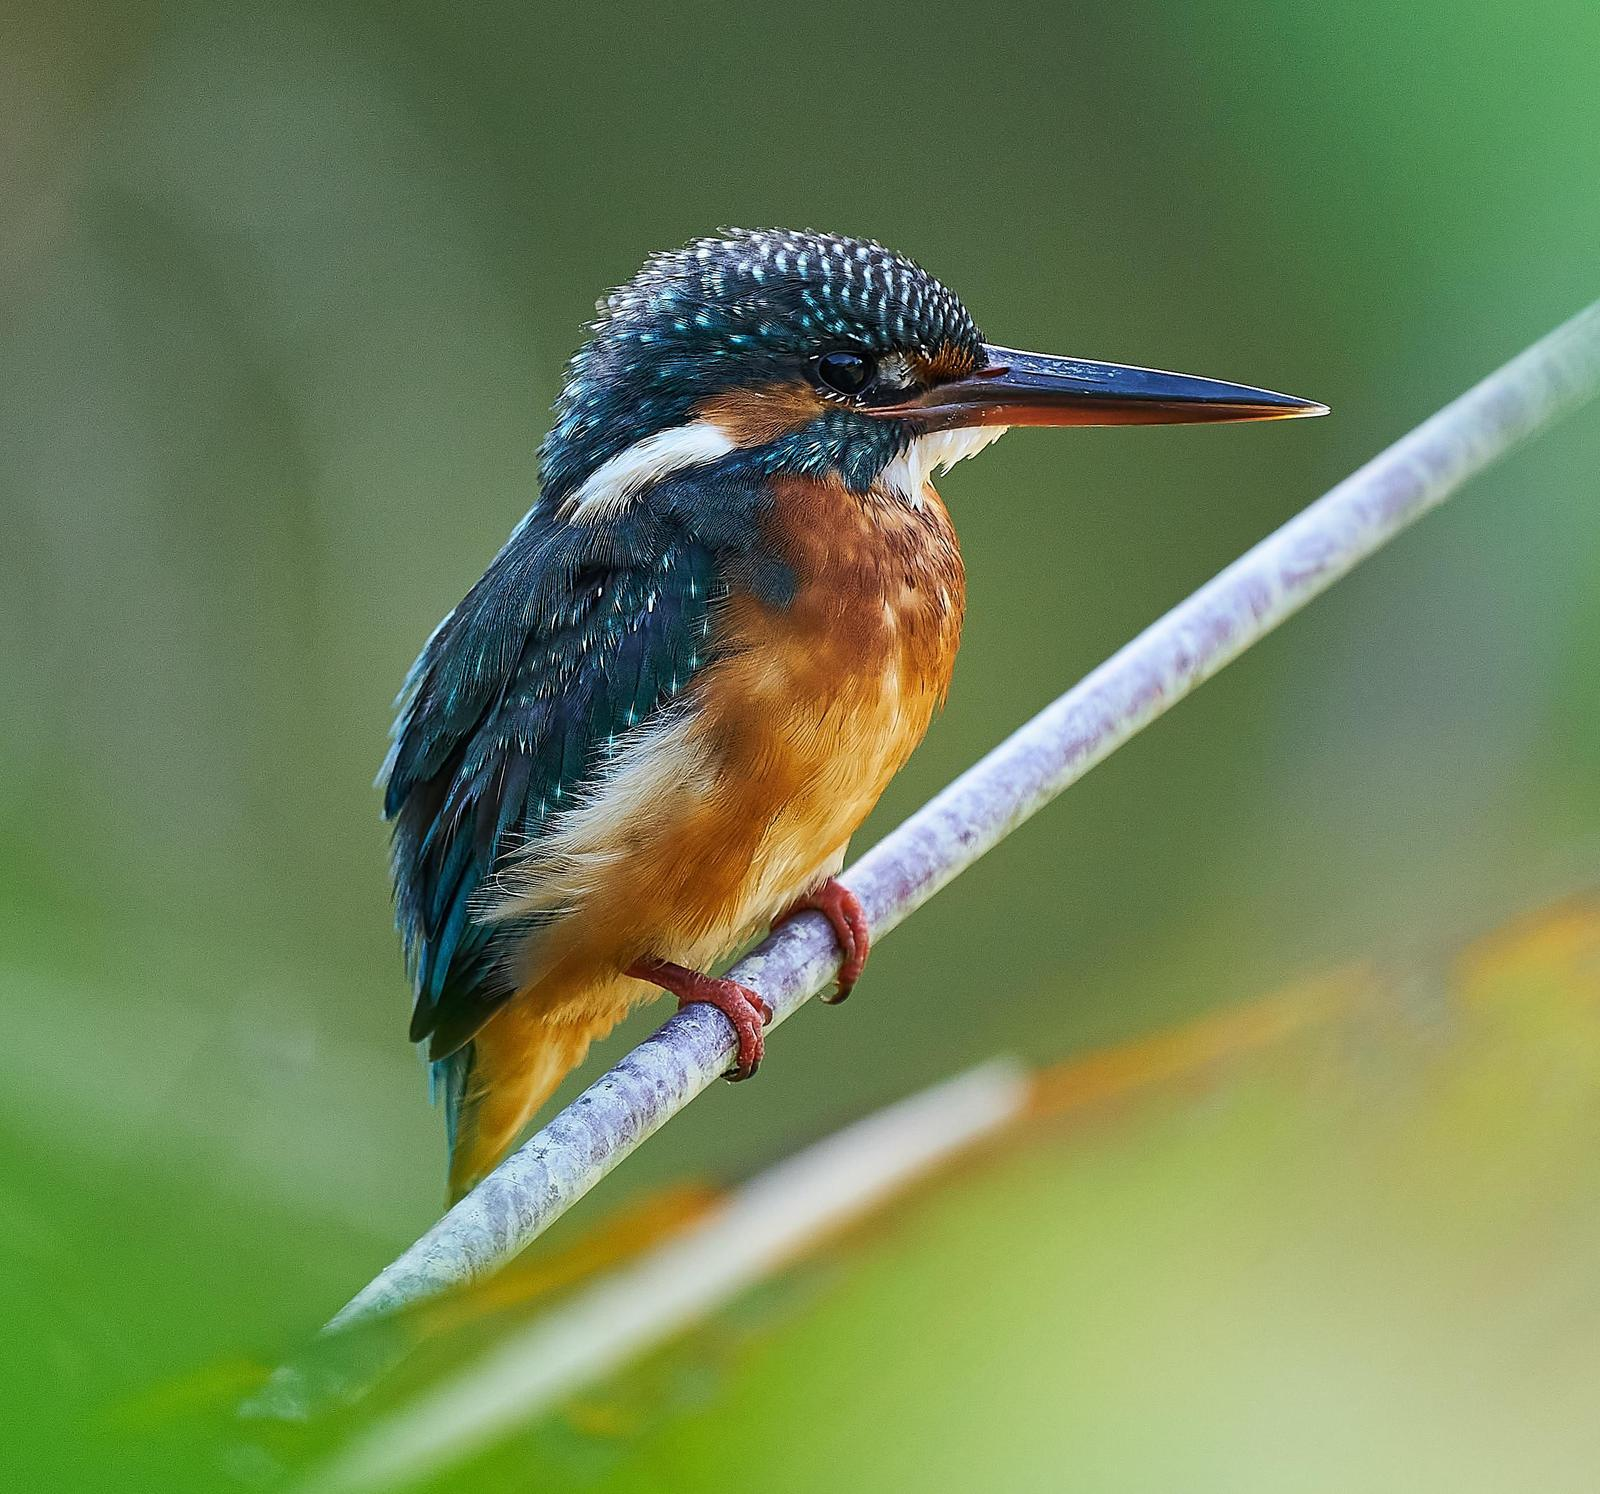 Common Kingfisher Photo by Steven Cheong